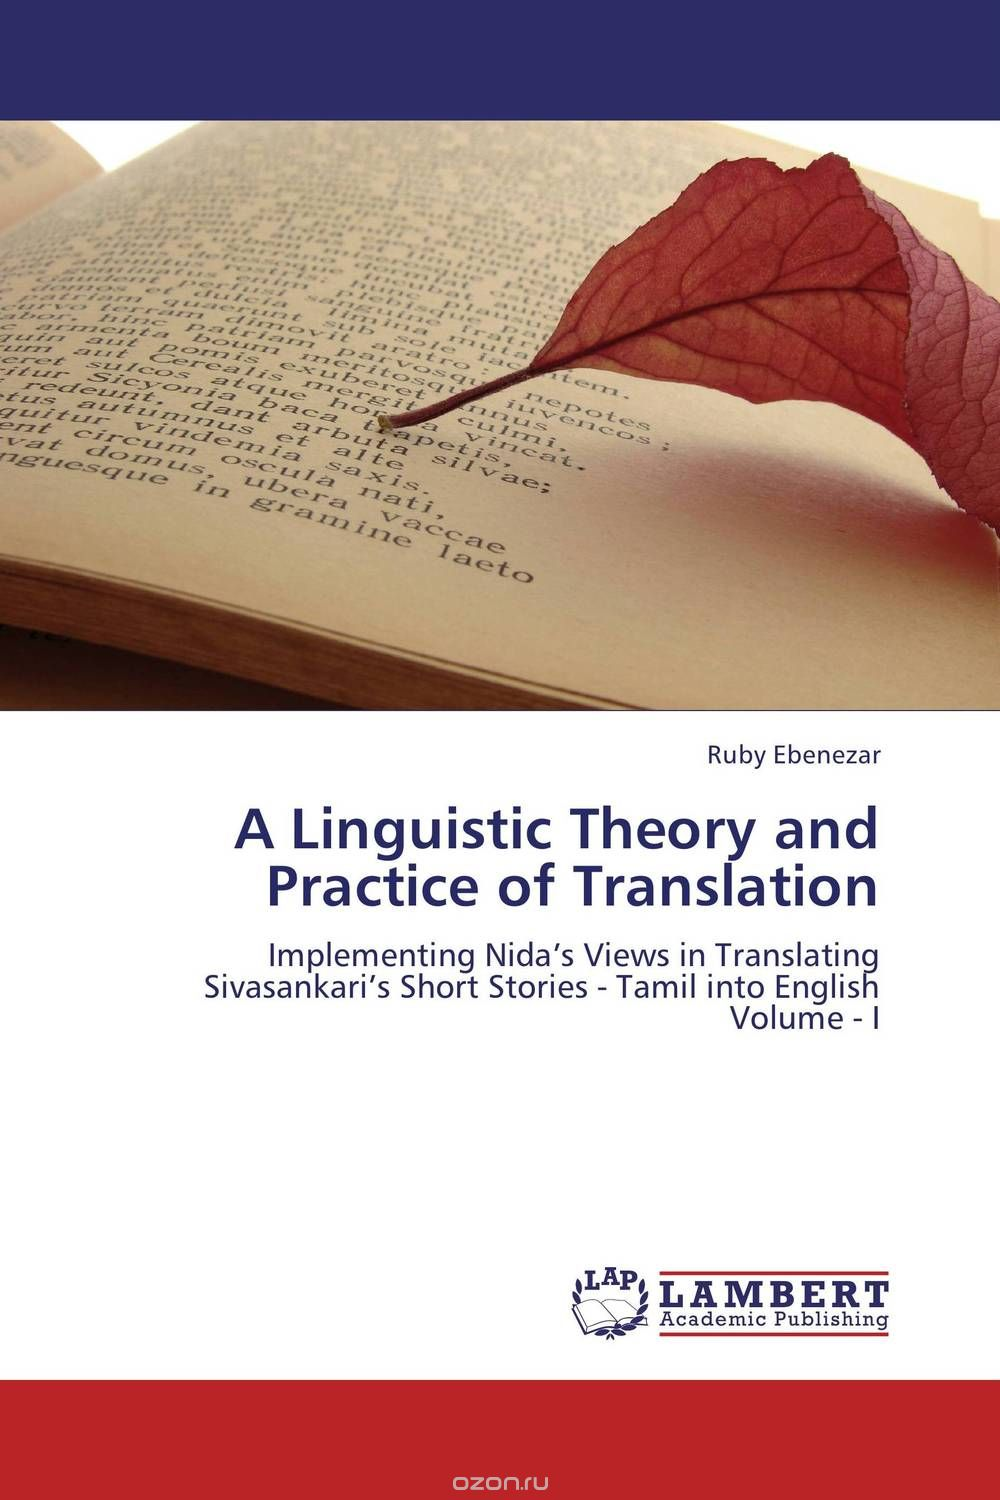 A Linguistic Theory and Practice of Translation